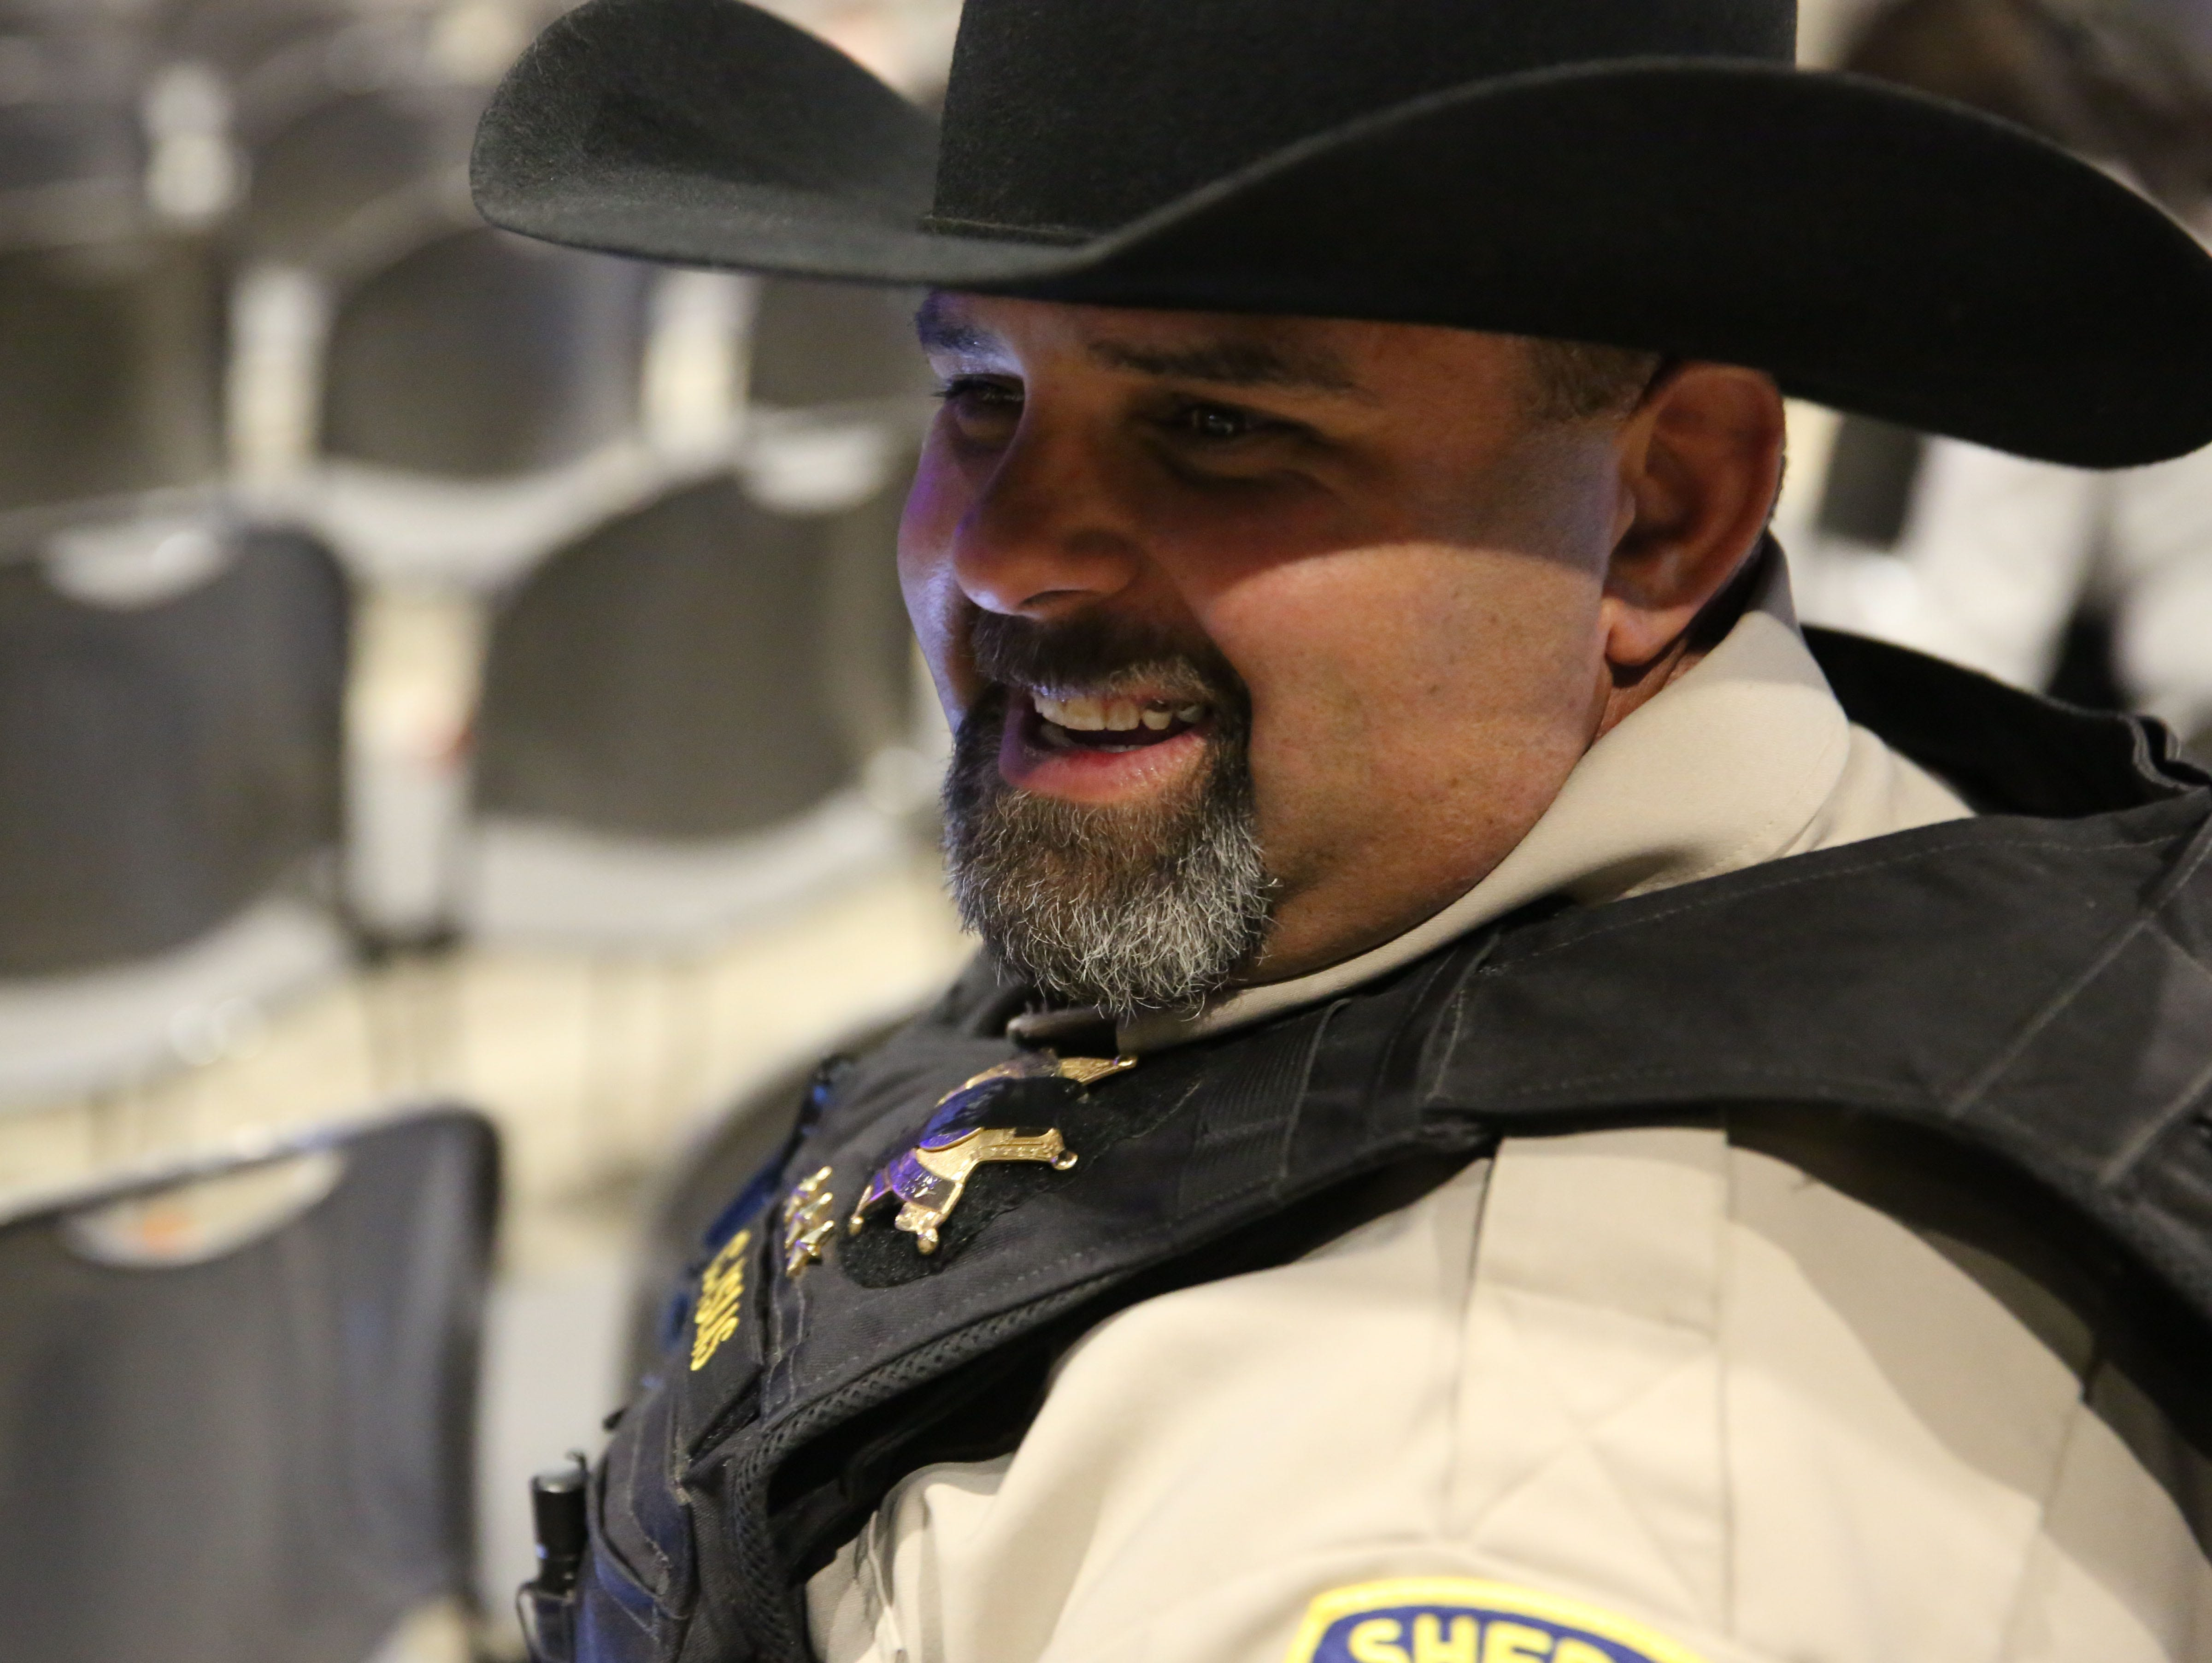 Chaves County Chief Deputy Charles Ysales, whose been a law enforcement officer for 21 years, said being a police officer was what he always wanted to do.